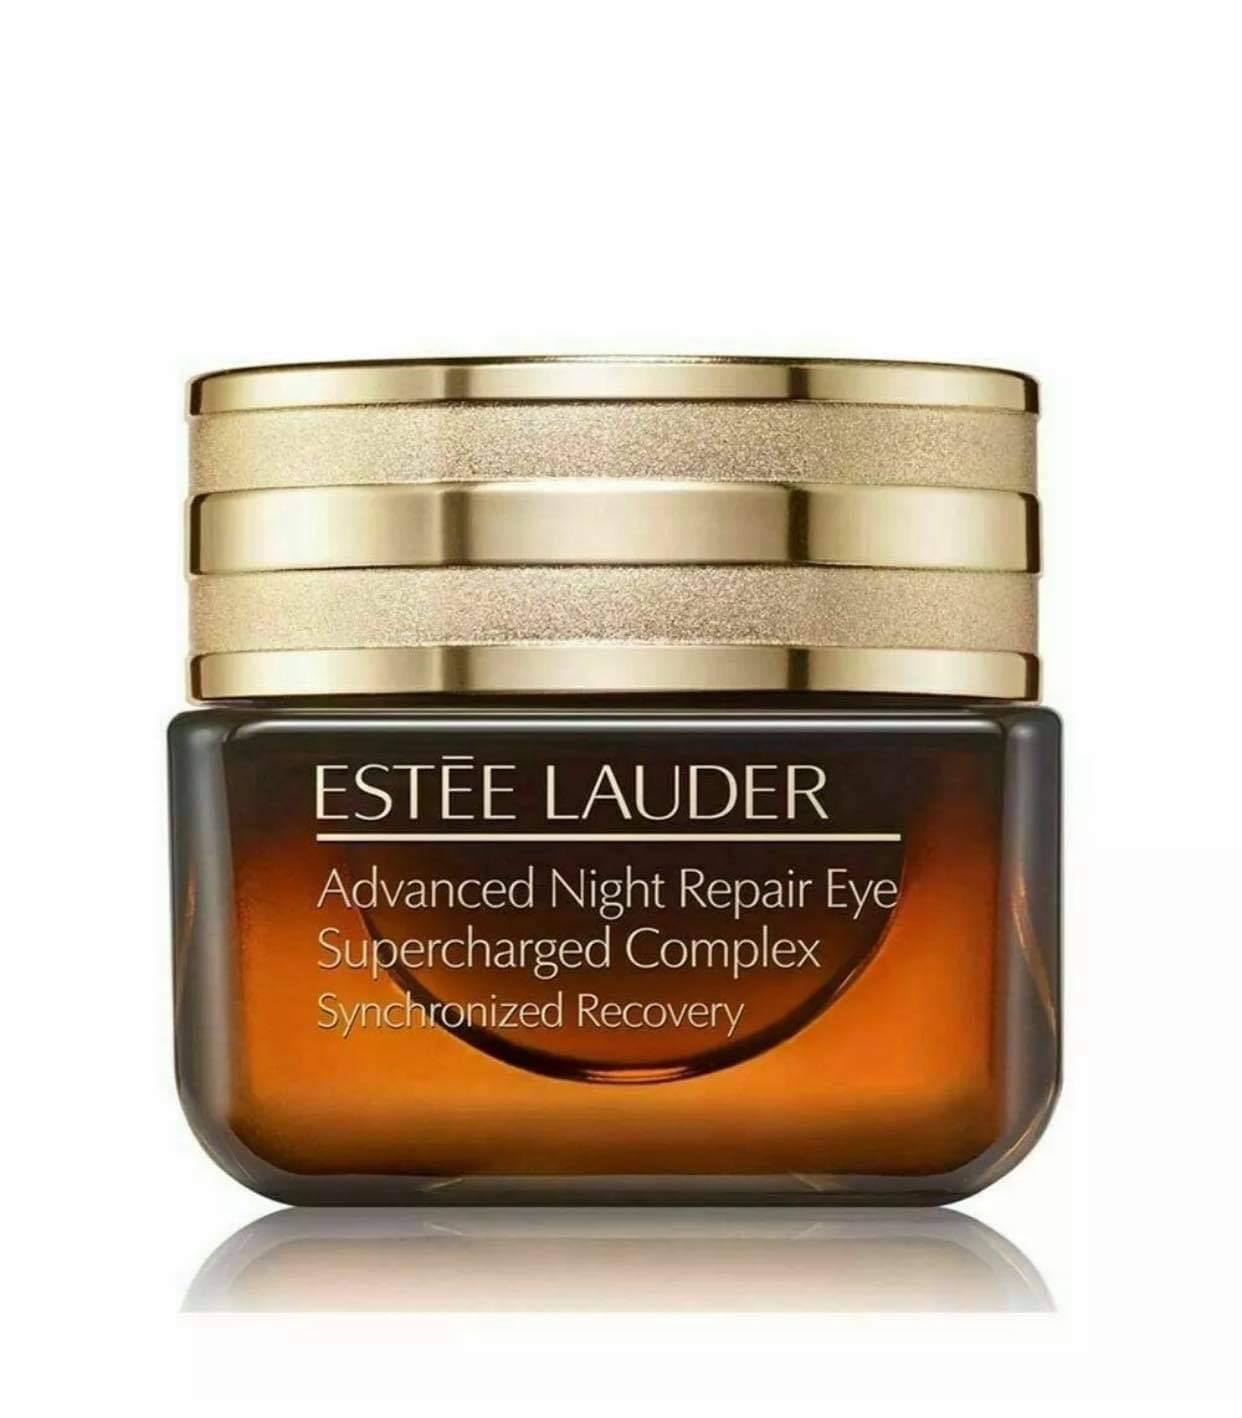 Advanced Night Repair Eye - ESTÉE LAUDER